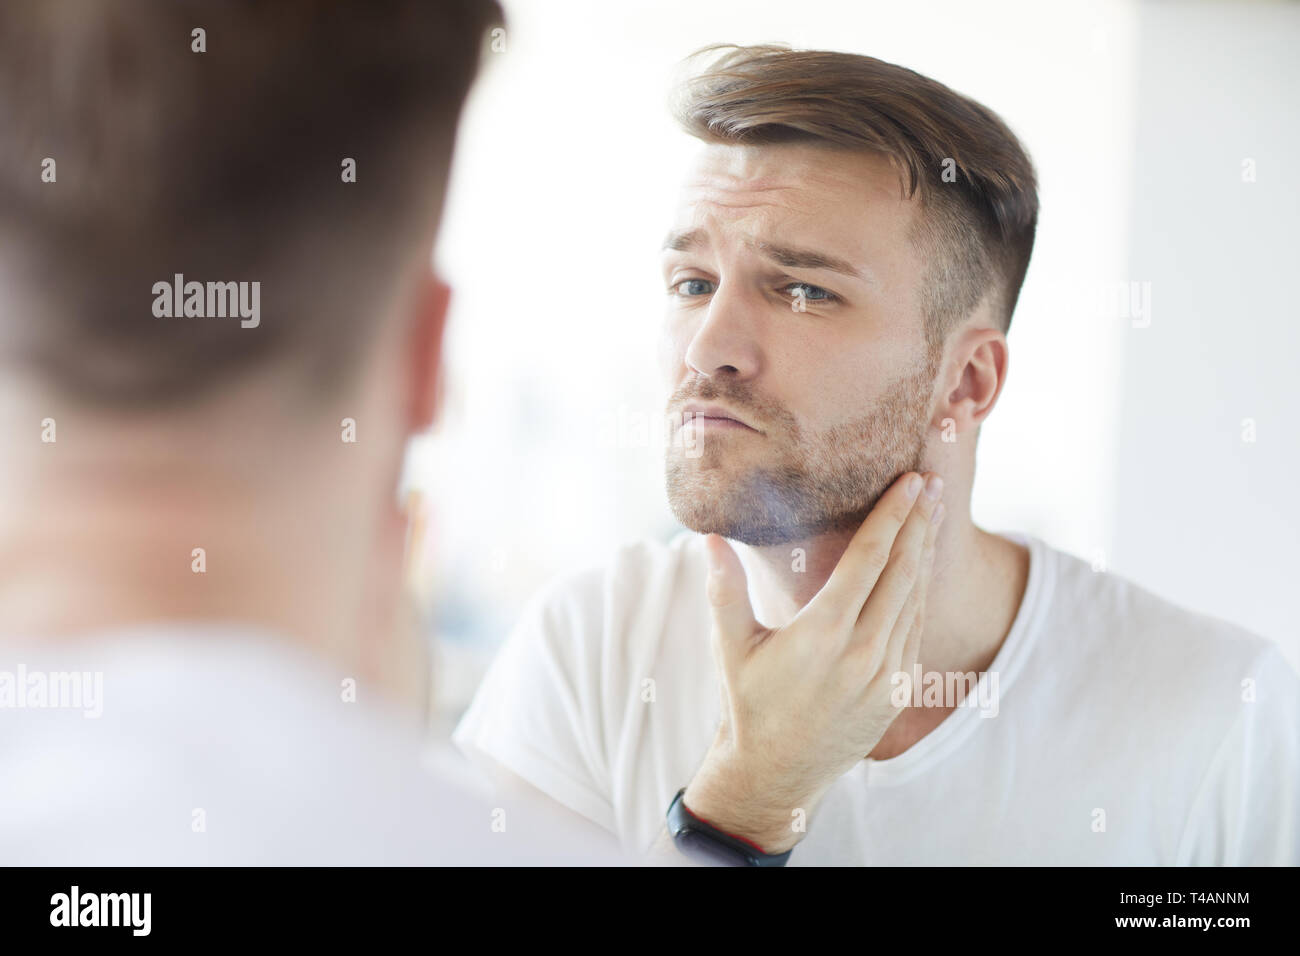 Unshaved Man Looking in Mirror - Stock Image